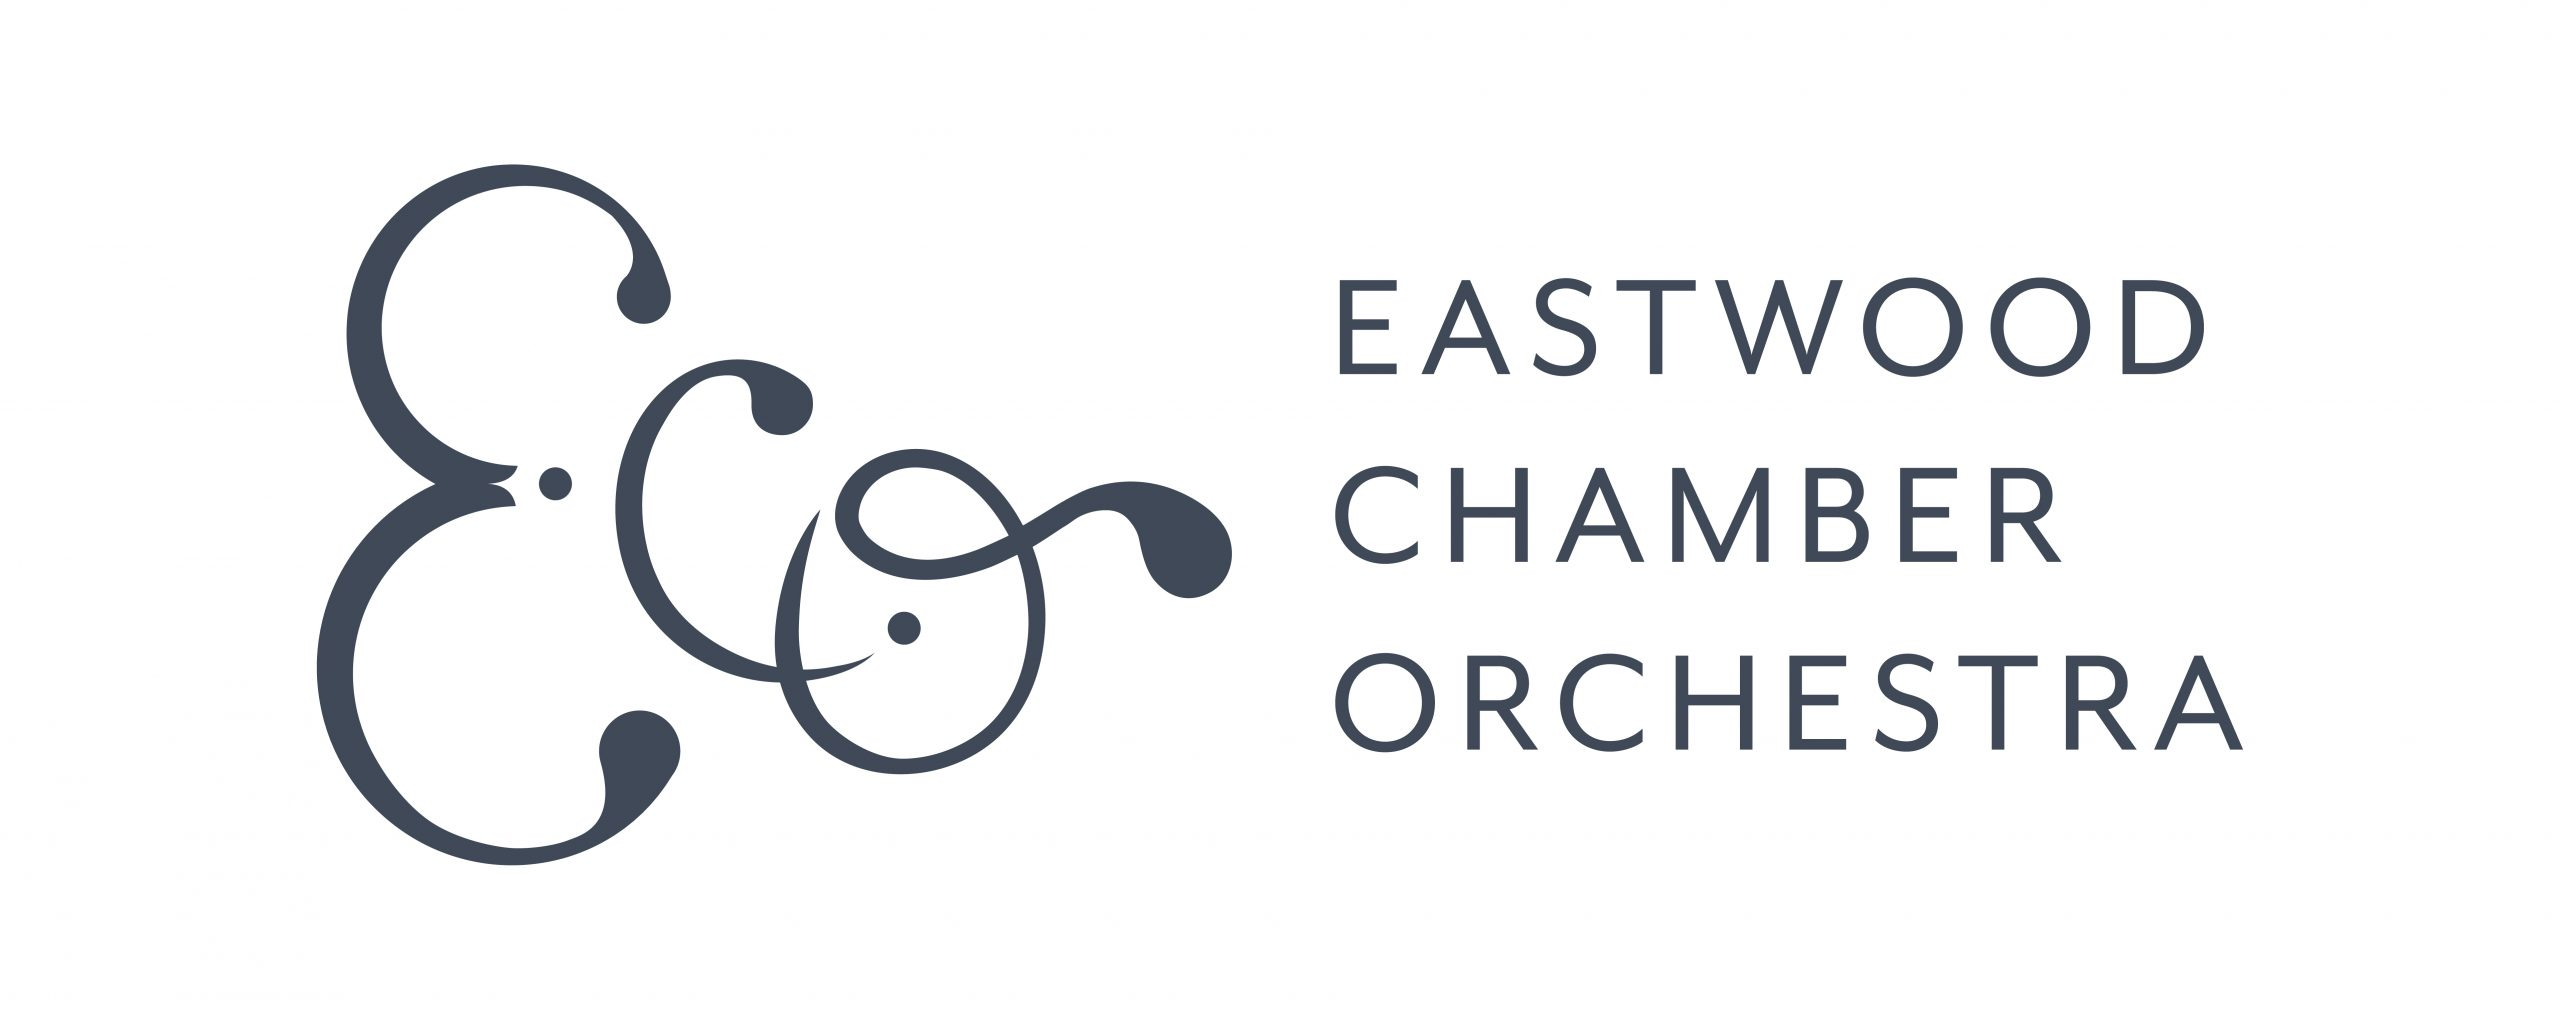 Eastwood chamber orchestra logo